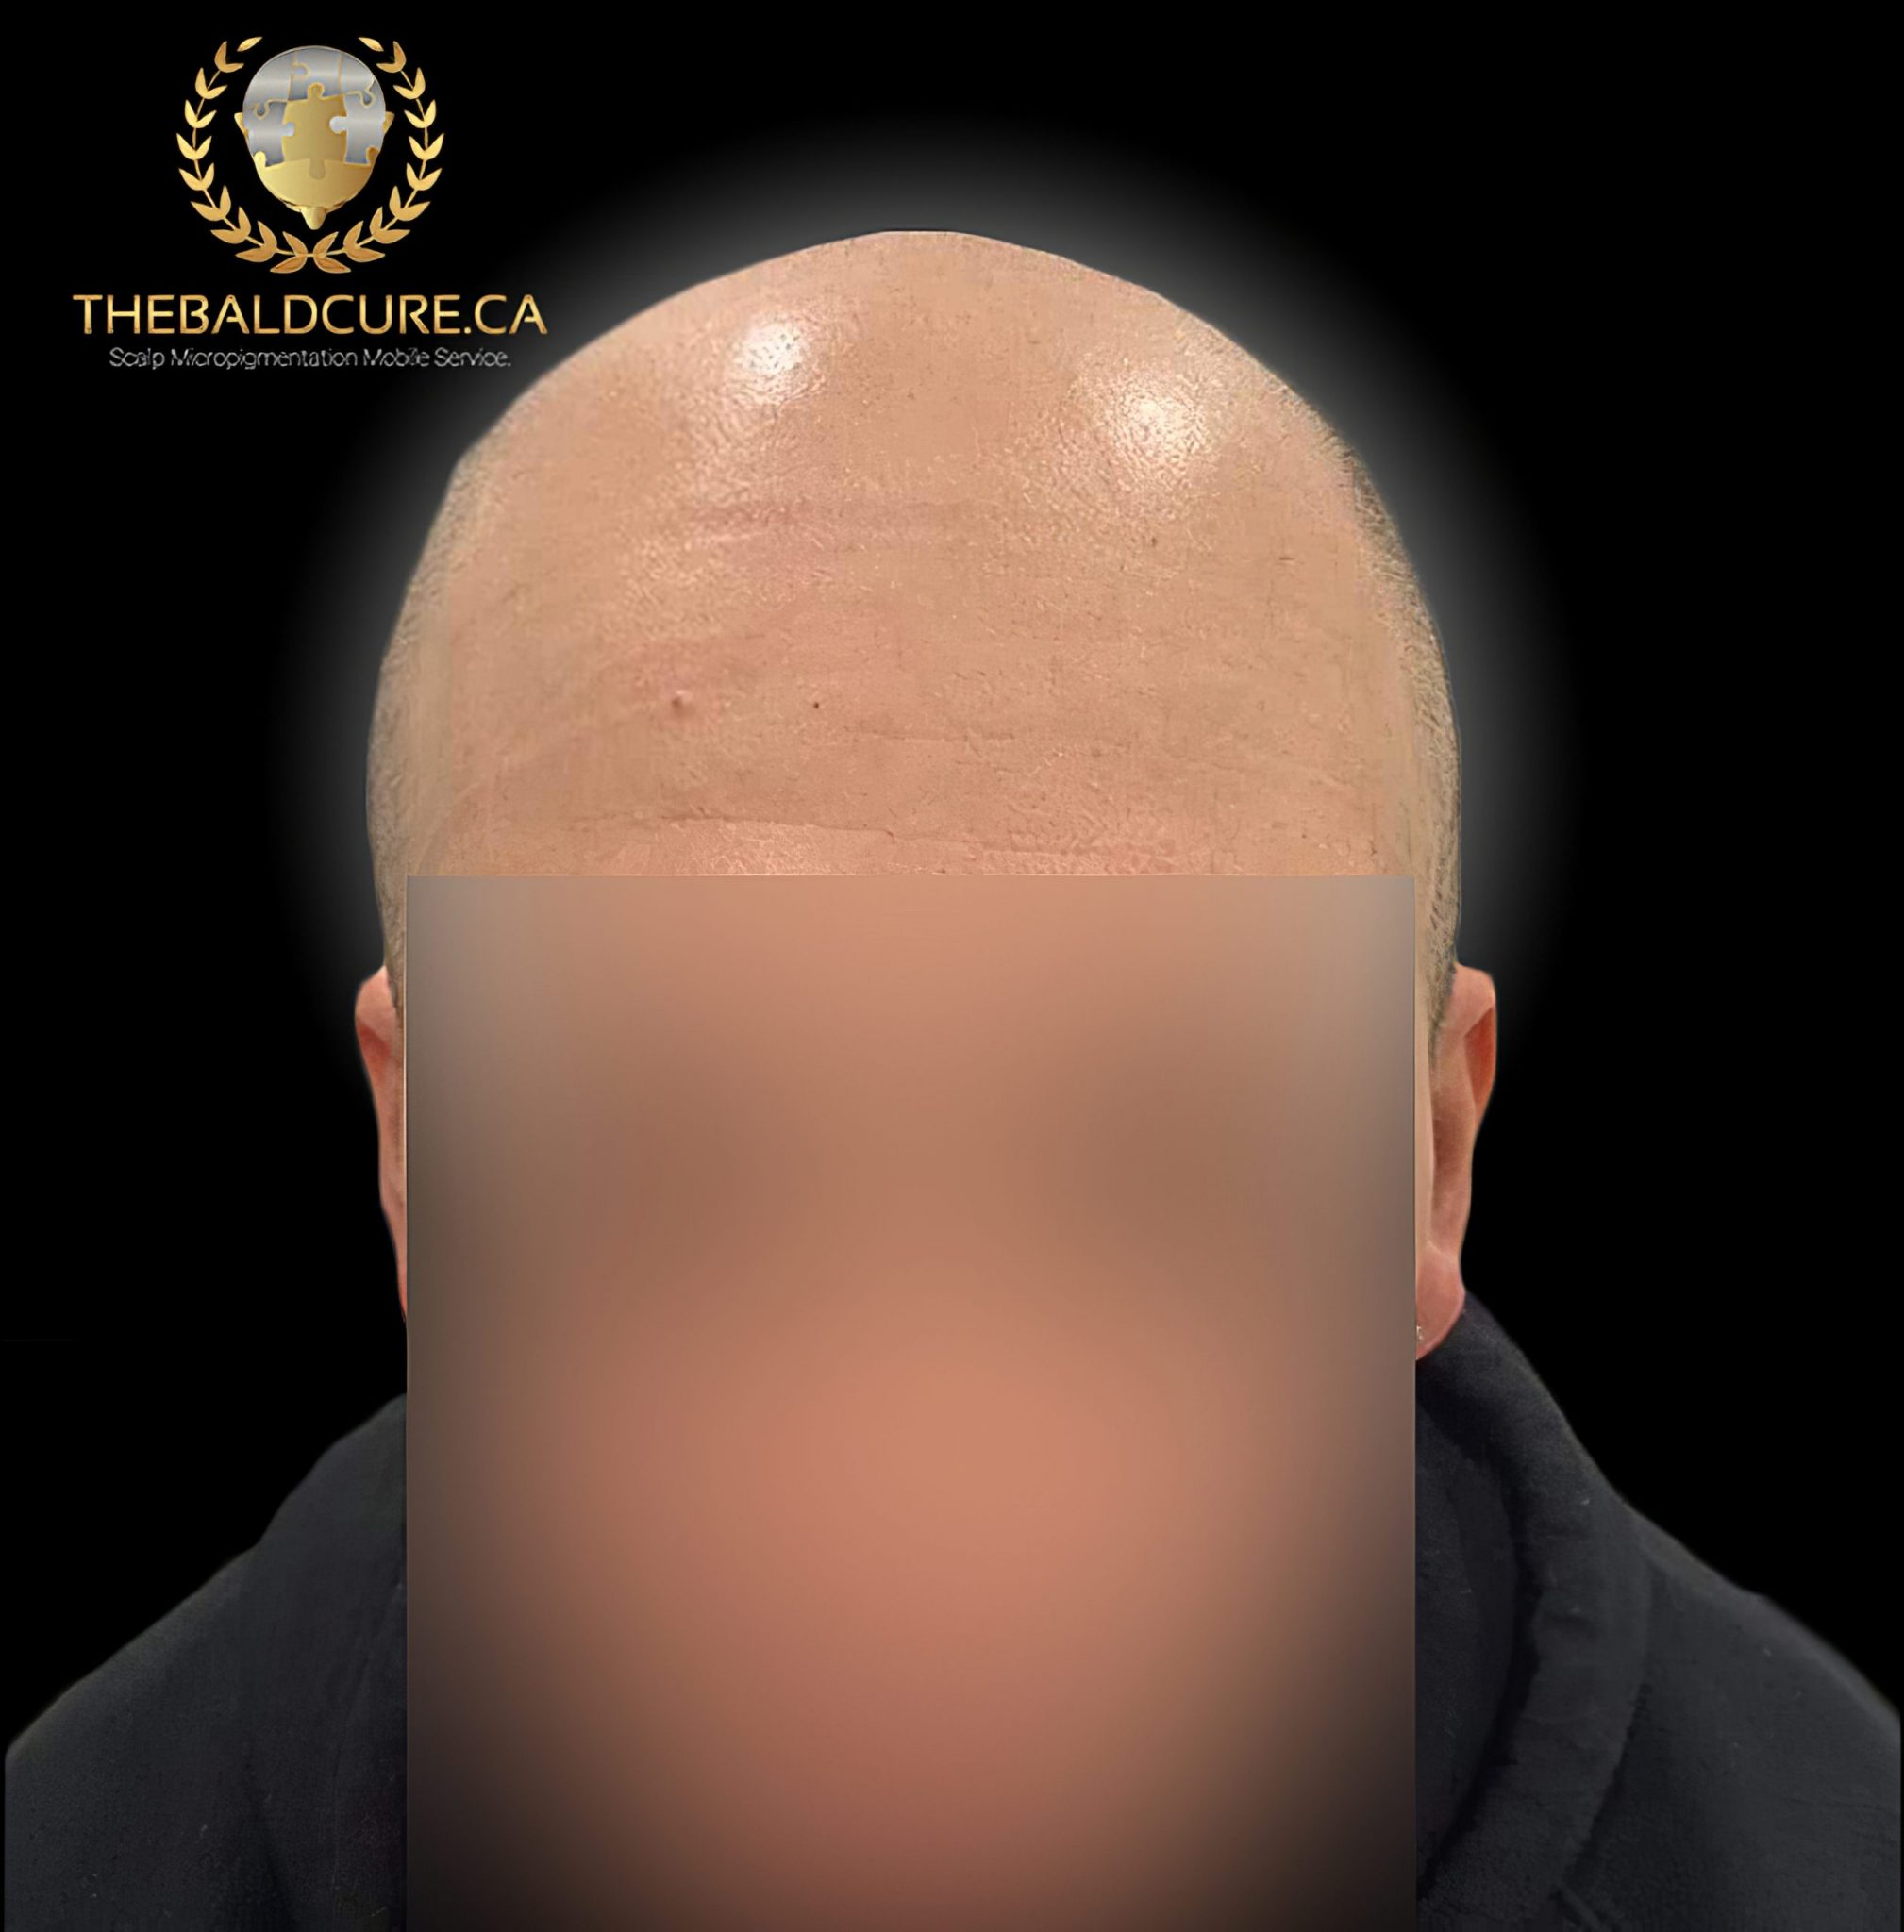 The Bald Cure Mobile Service In The Comfort Of Your Home We Beat Any Price 16-high-Resolution-scaled Pictures. Explore Our Photo Gallery